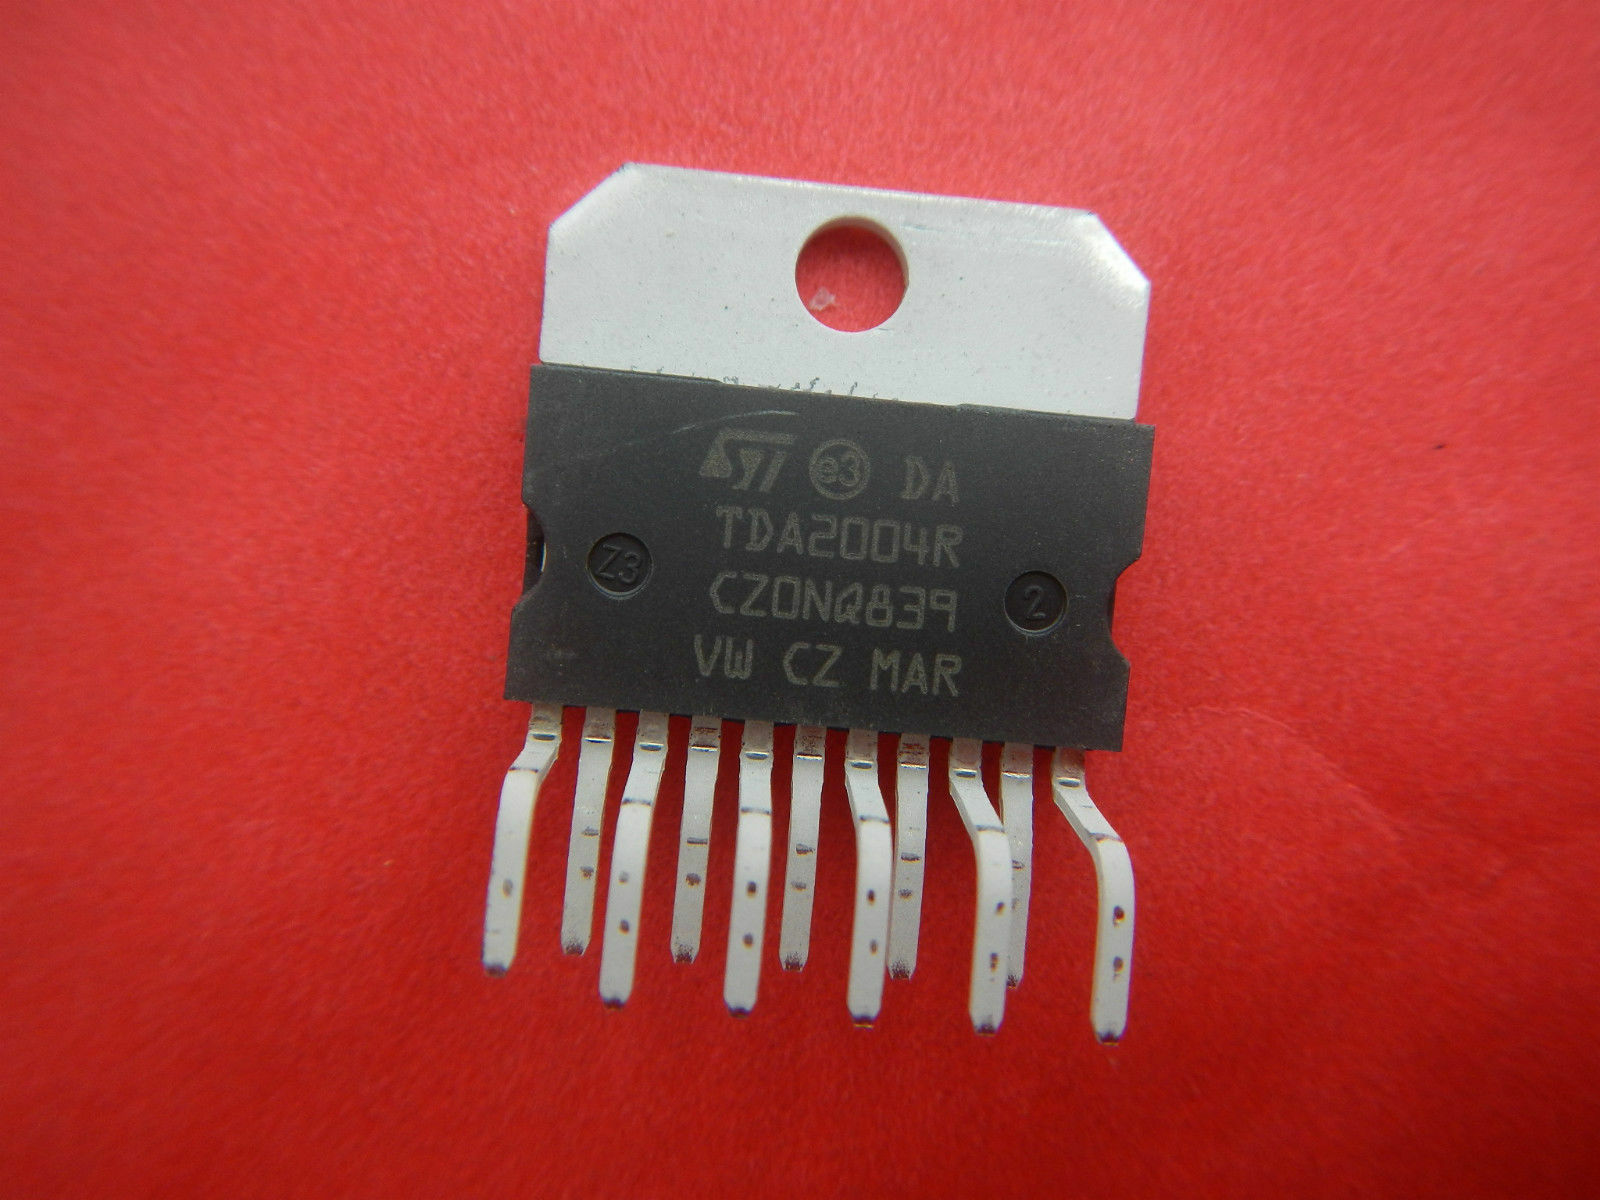 Tda2004 Tda2004r Integrated Circuit From St Microelectronics 099 Ne555 Datasheet Pdf Stmicroelectronics 1 Of 1only 5 Available